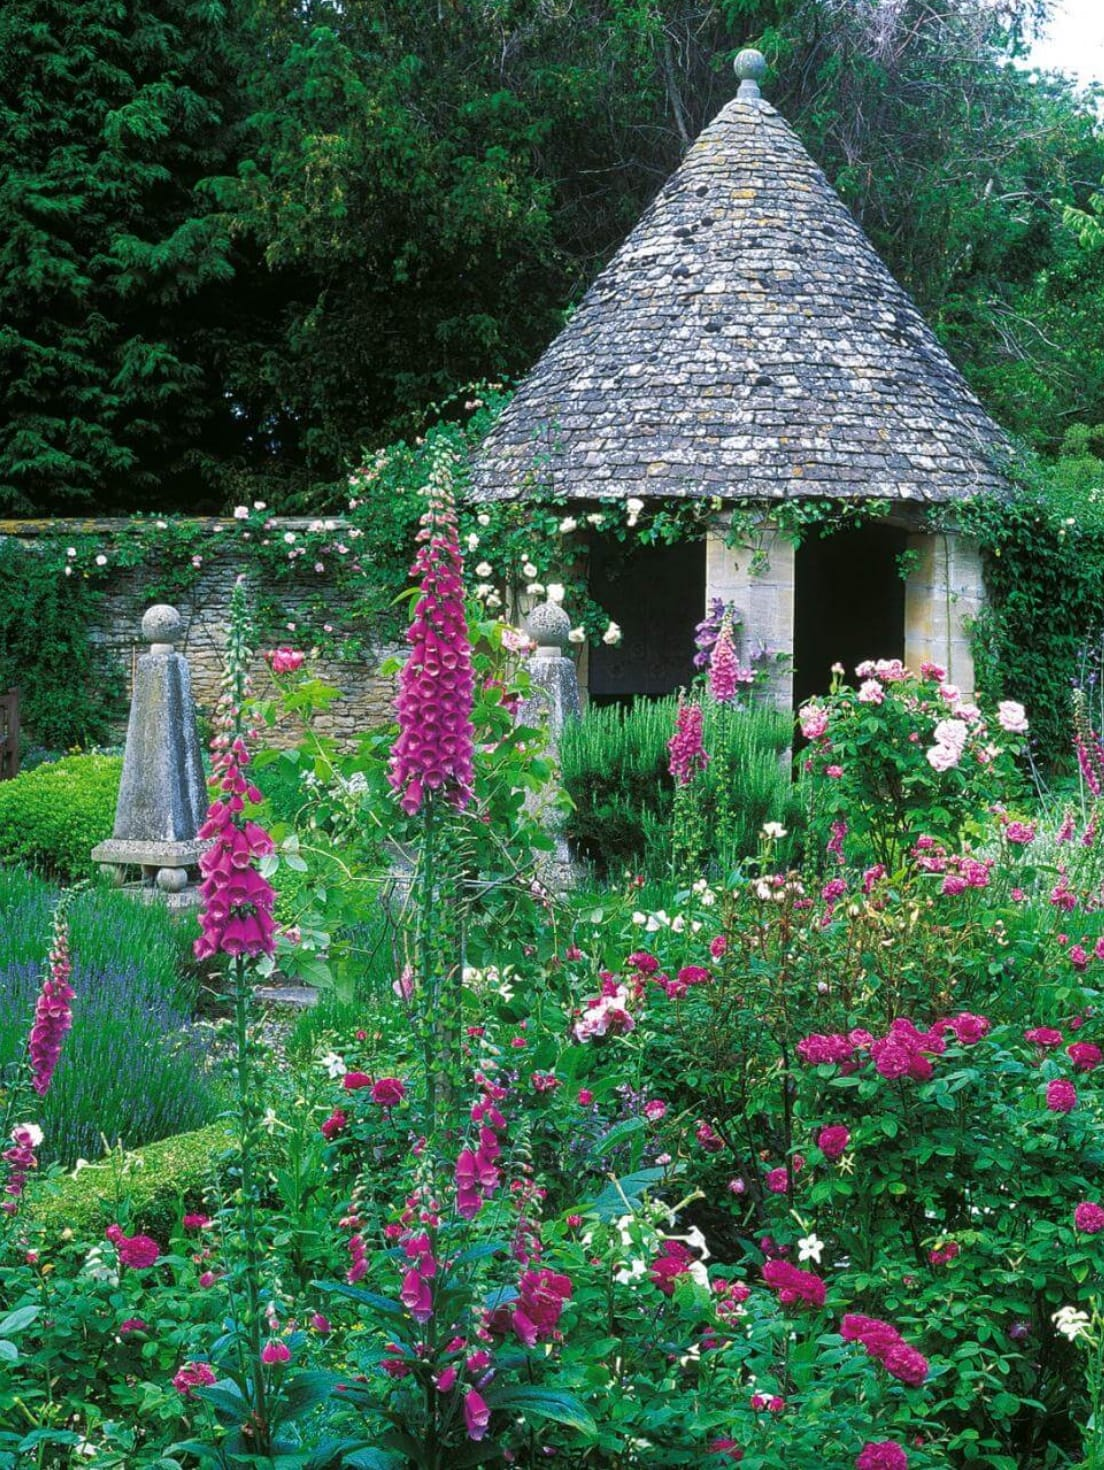 Best cottage style garden ideas for landscaping #18